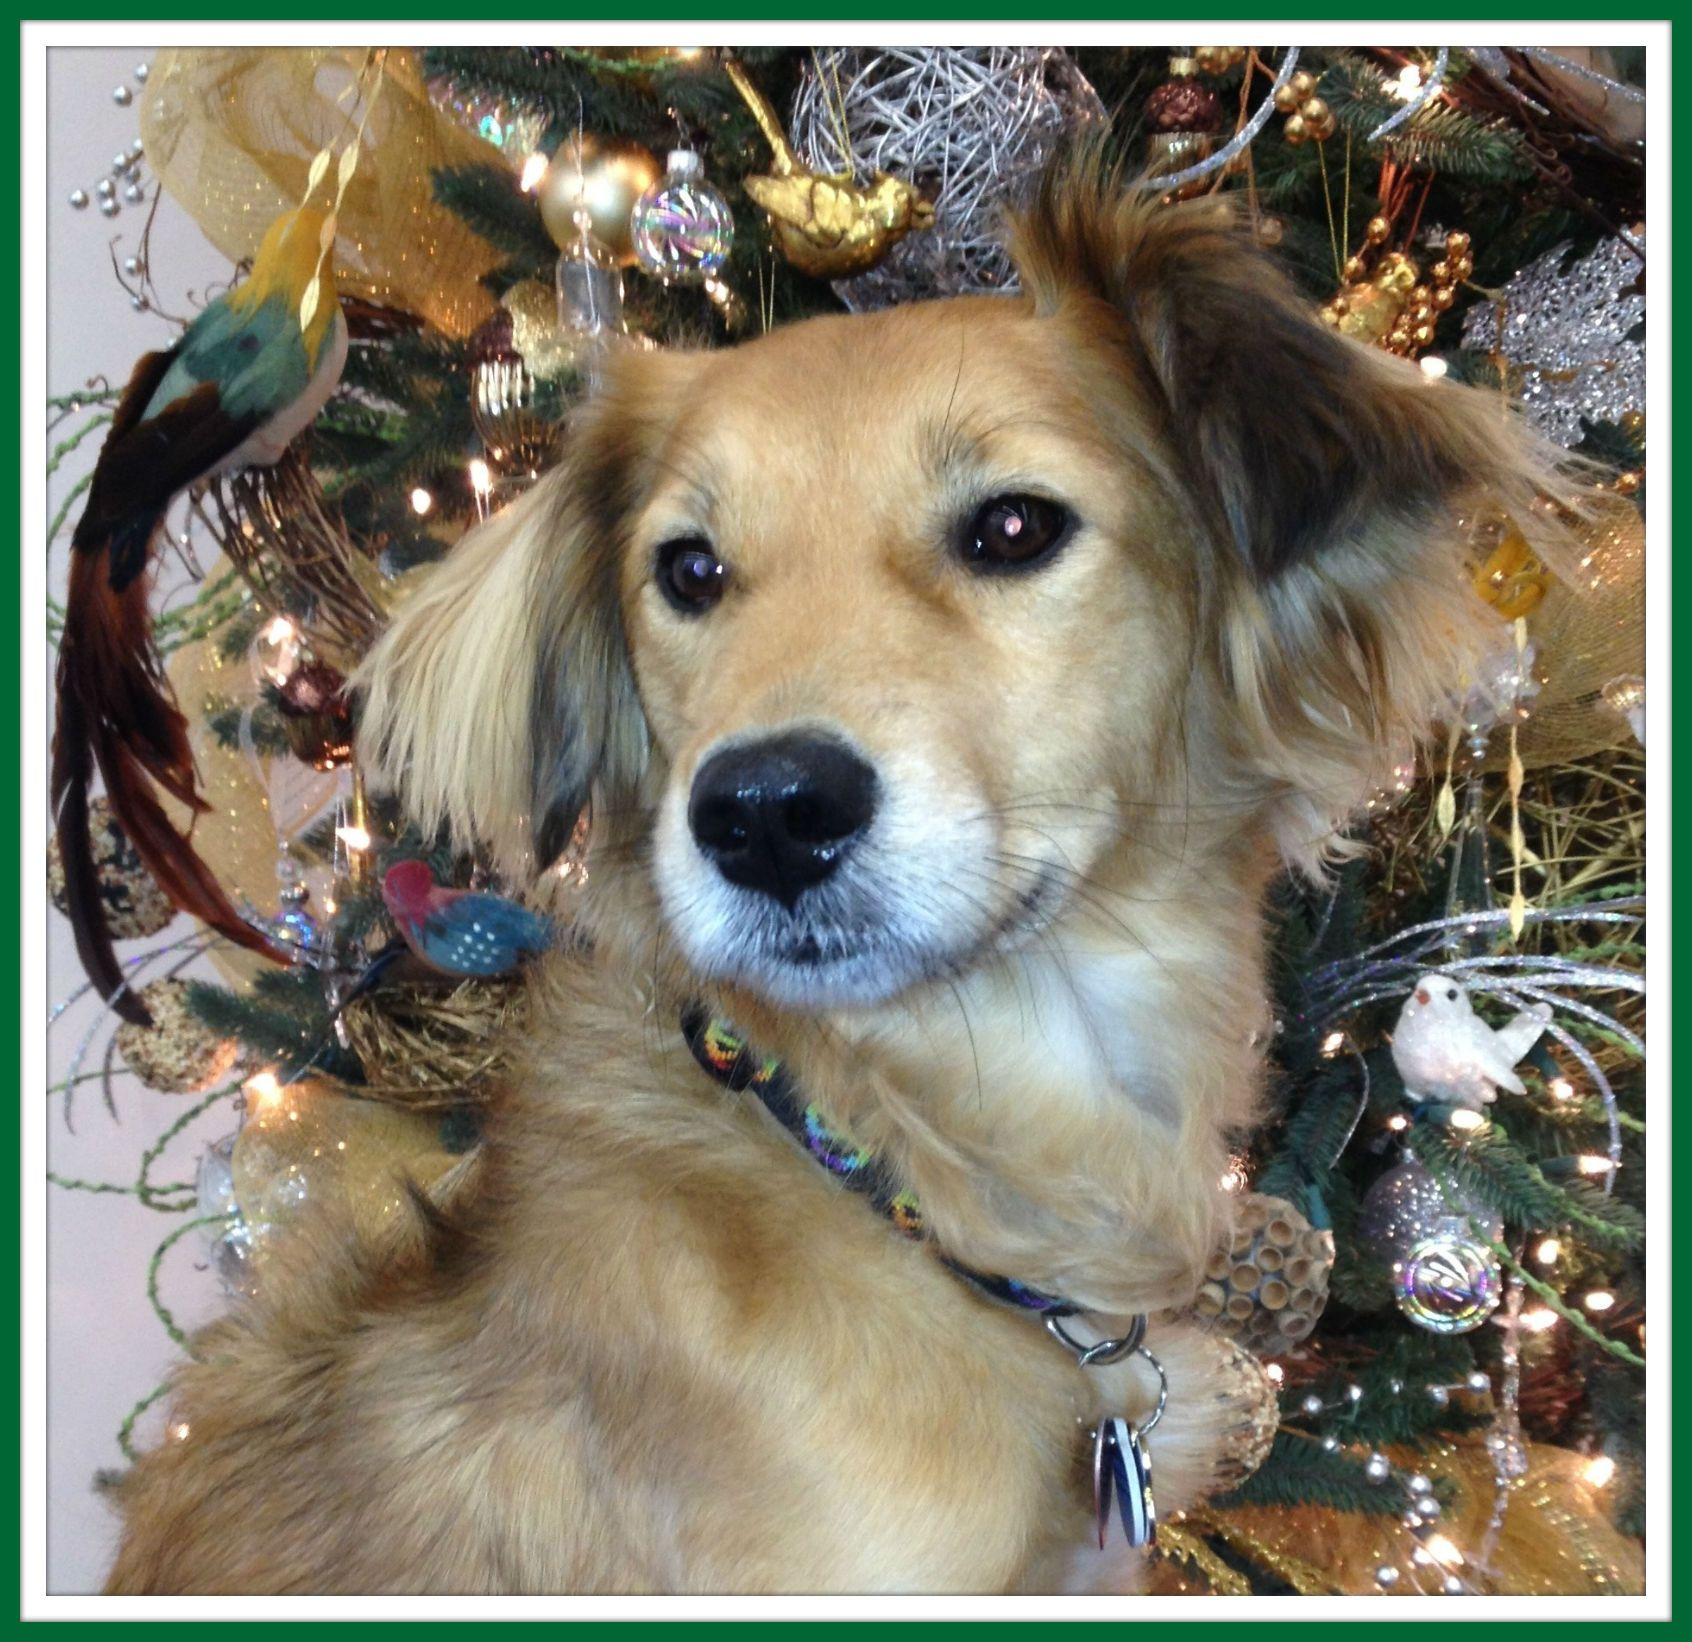 We are open for adoptions December 22 and 23 from 11 a.m. to 7 p.m.; December 24 from 11 a.m. to 2 p.m.; December 25 Closed; December 26 from 11 a.m. to 6 p.m. and December 27 and 28 from 10 a.m. to 6 p.m. www.HoustonSPCA.org